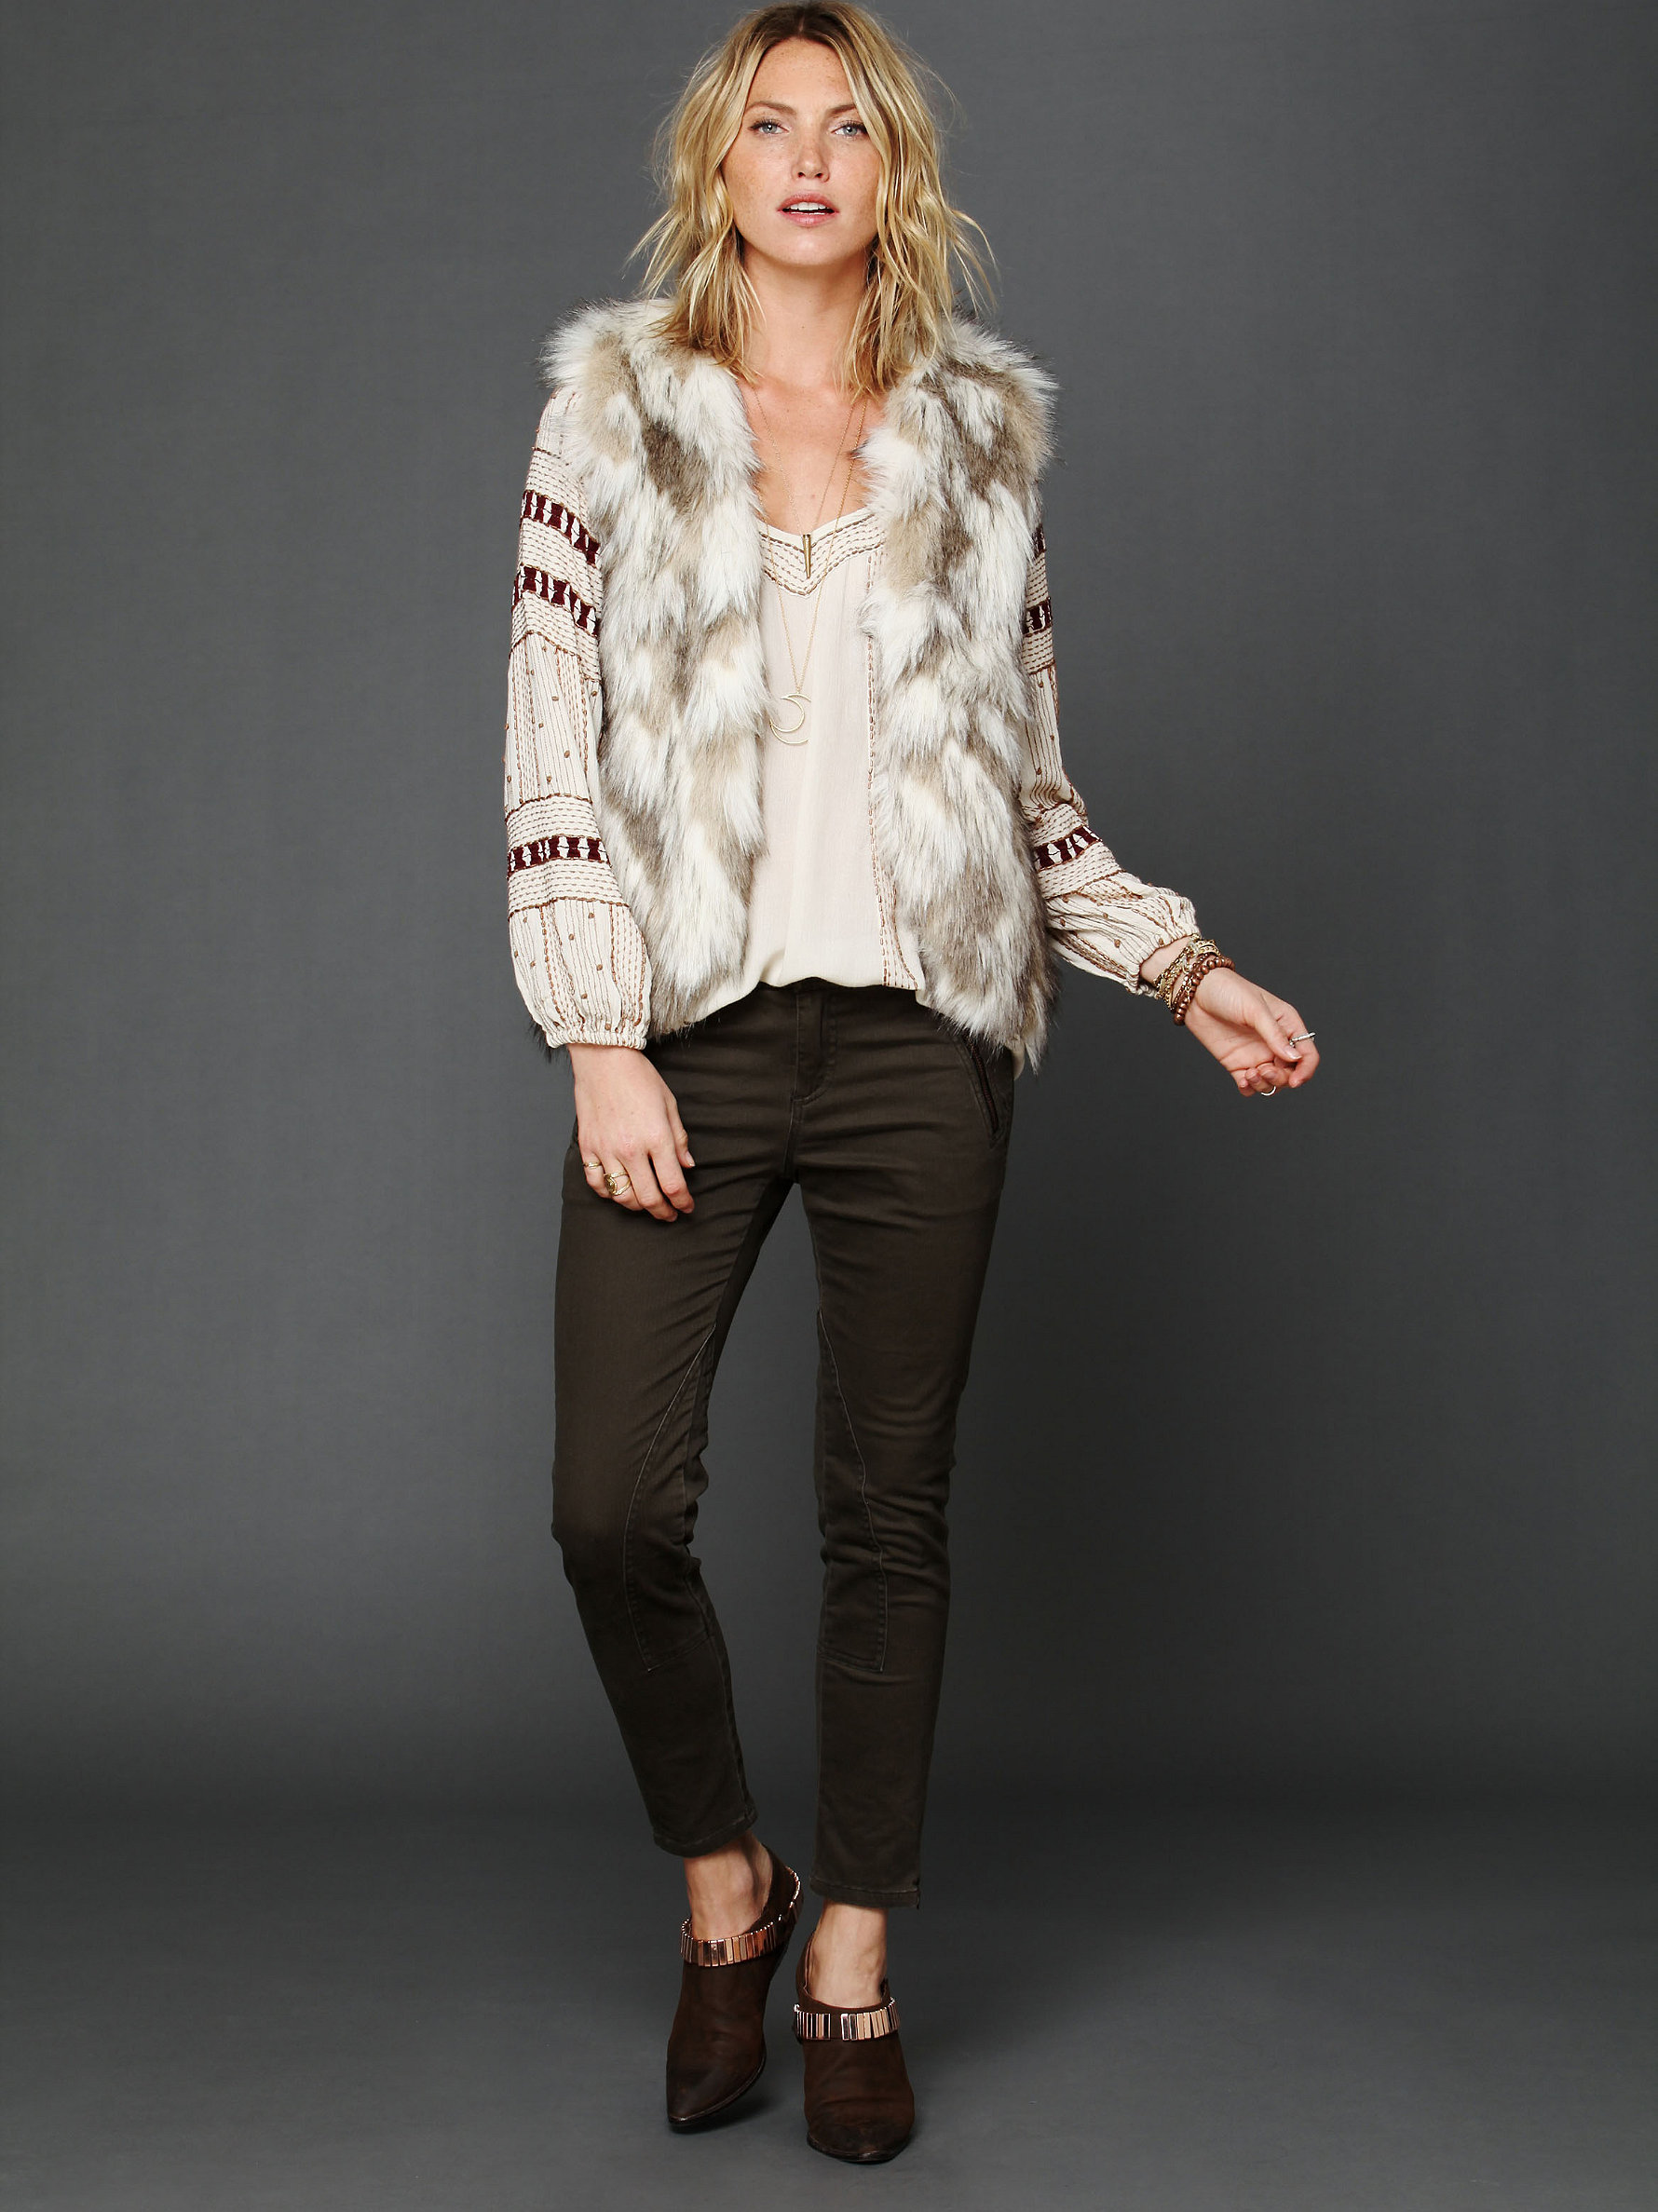 Call of the Wild Fur Vest from Free People